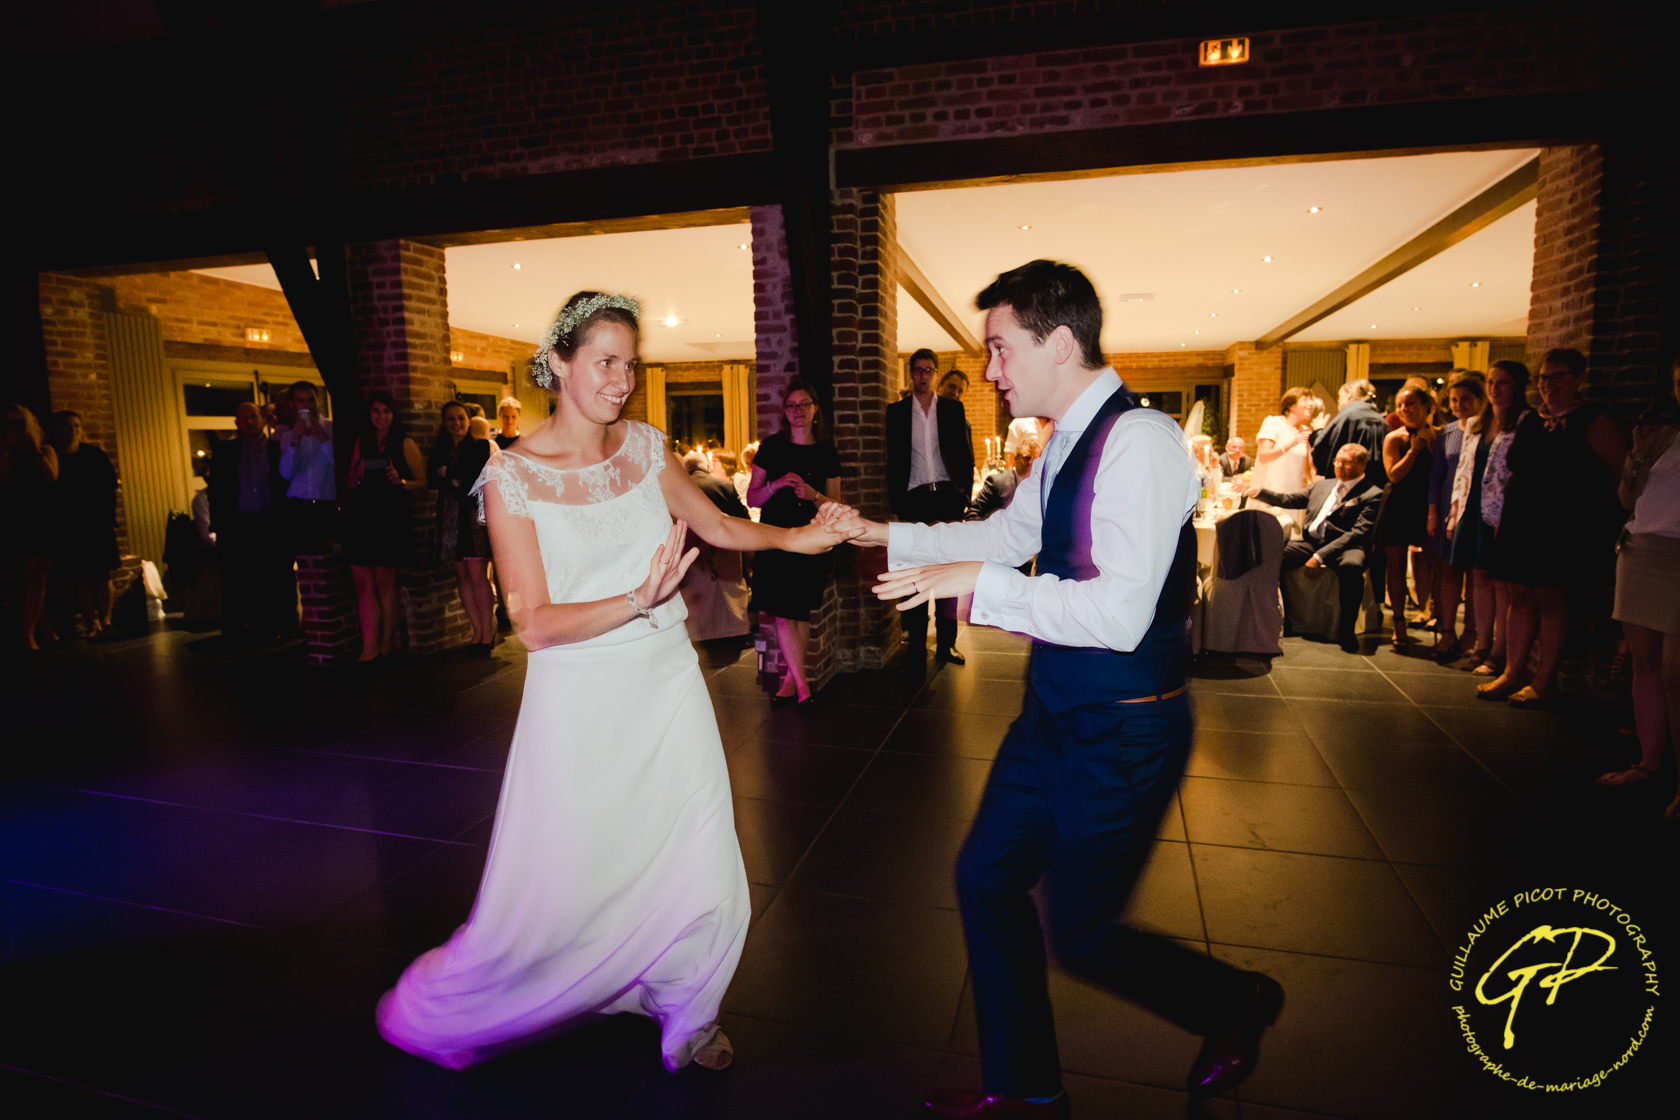 mariage-claire-fontaine-wicres-115-sur-151